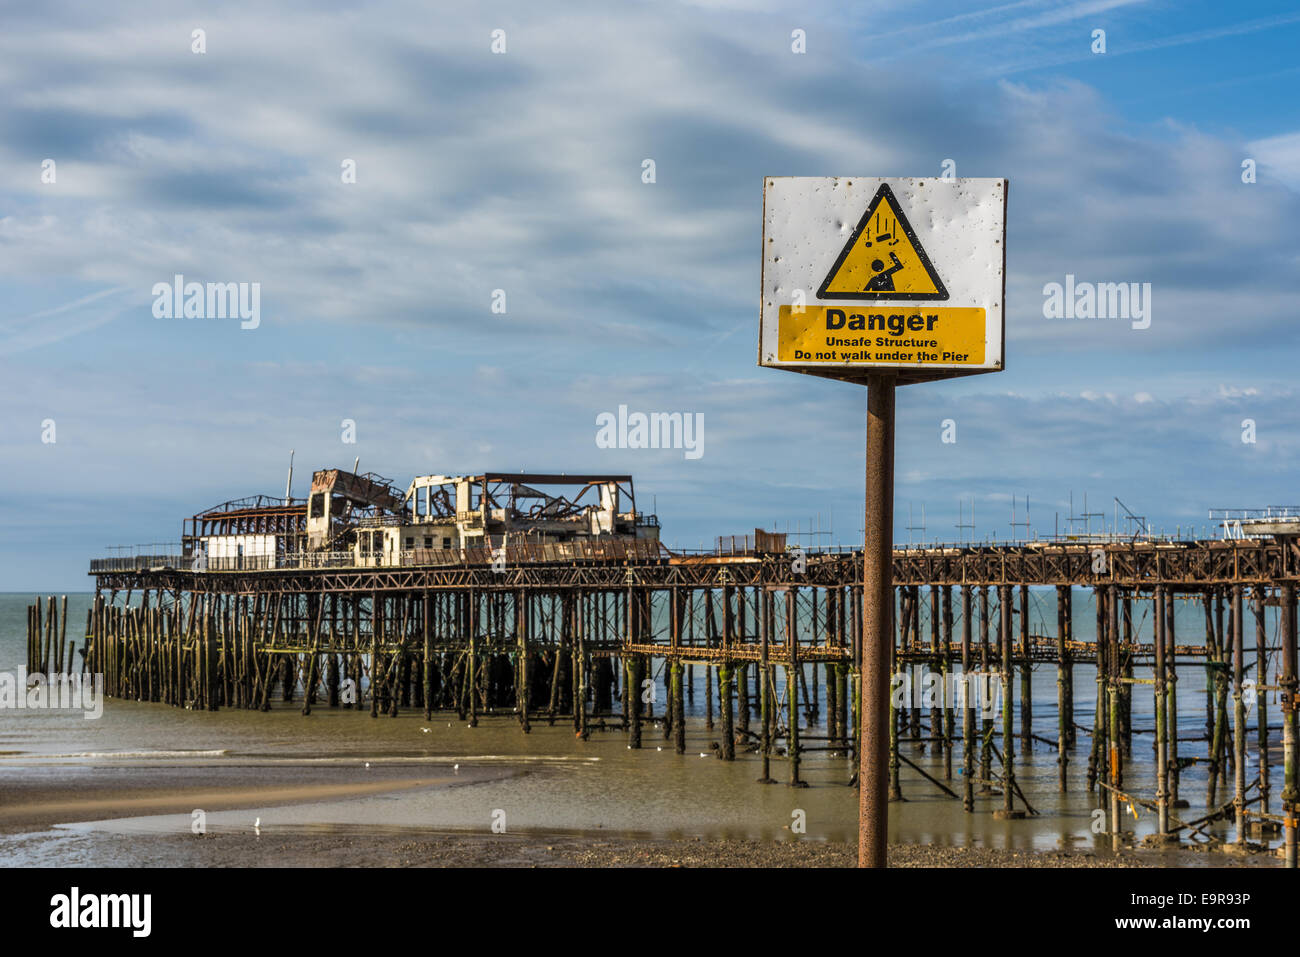 Danger, unsafe structure reads the sign following a fire at the Pier in Hastings, a popular seaside town in East - Stock Image